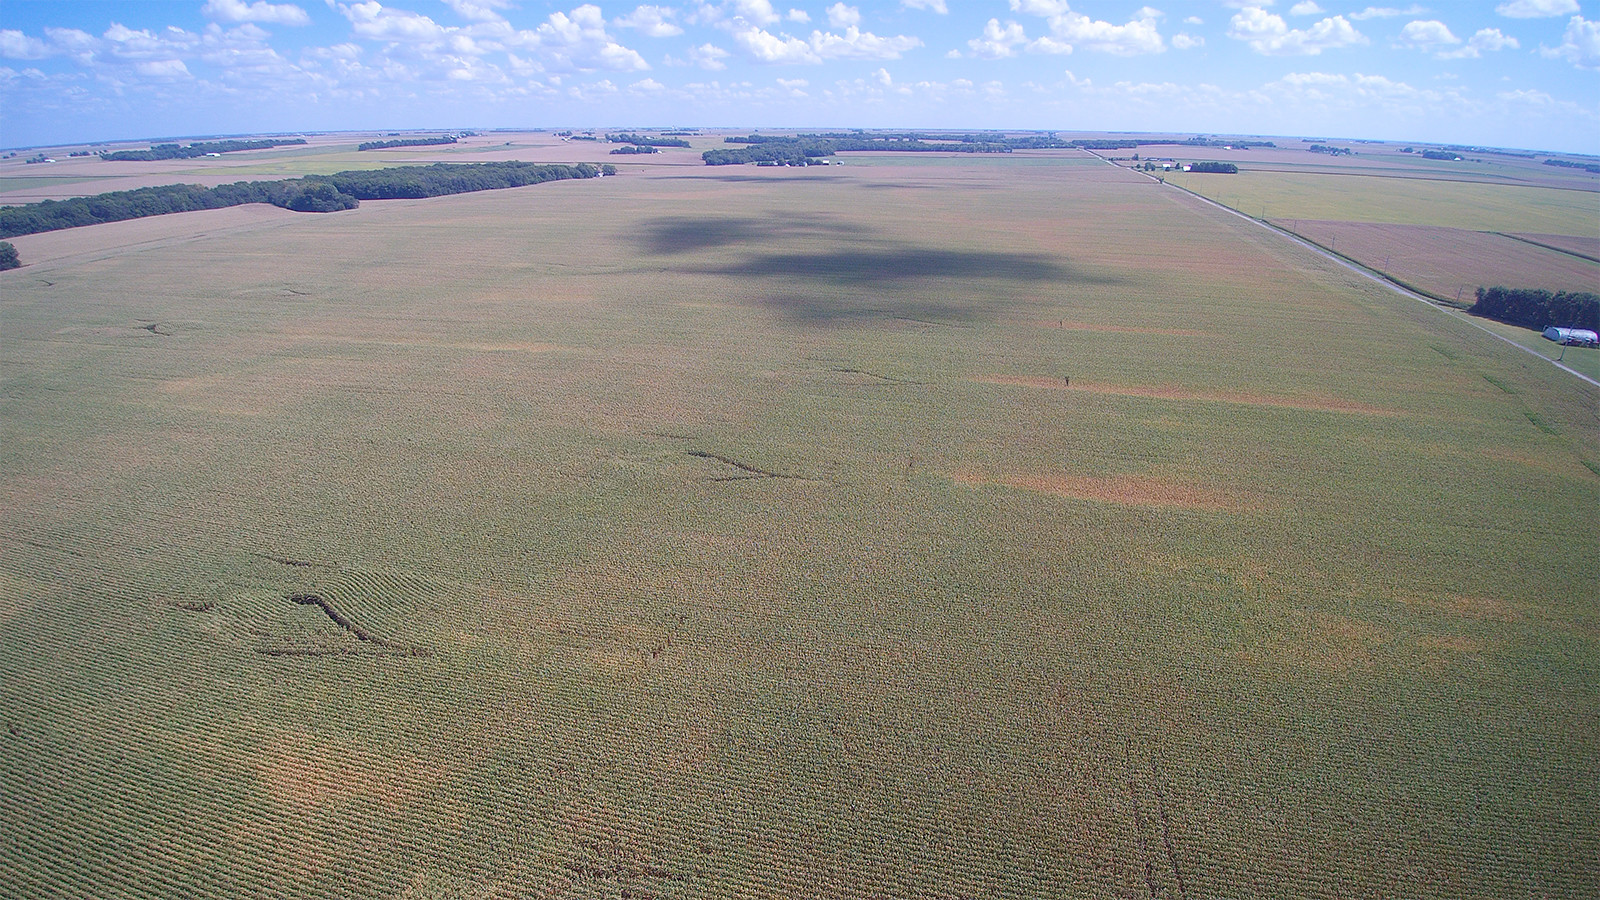 Drone 1 - MWA Auctions & Real Estate | Macon Co Farmland Auction 240 Ac - Dec 12 2019